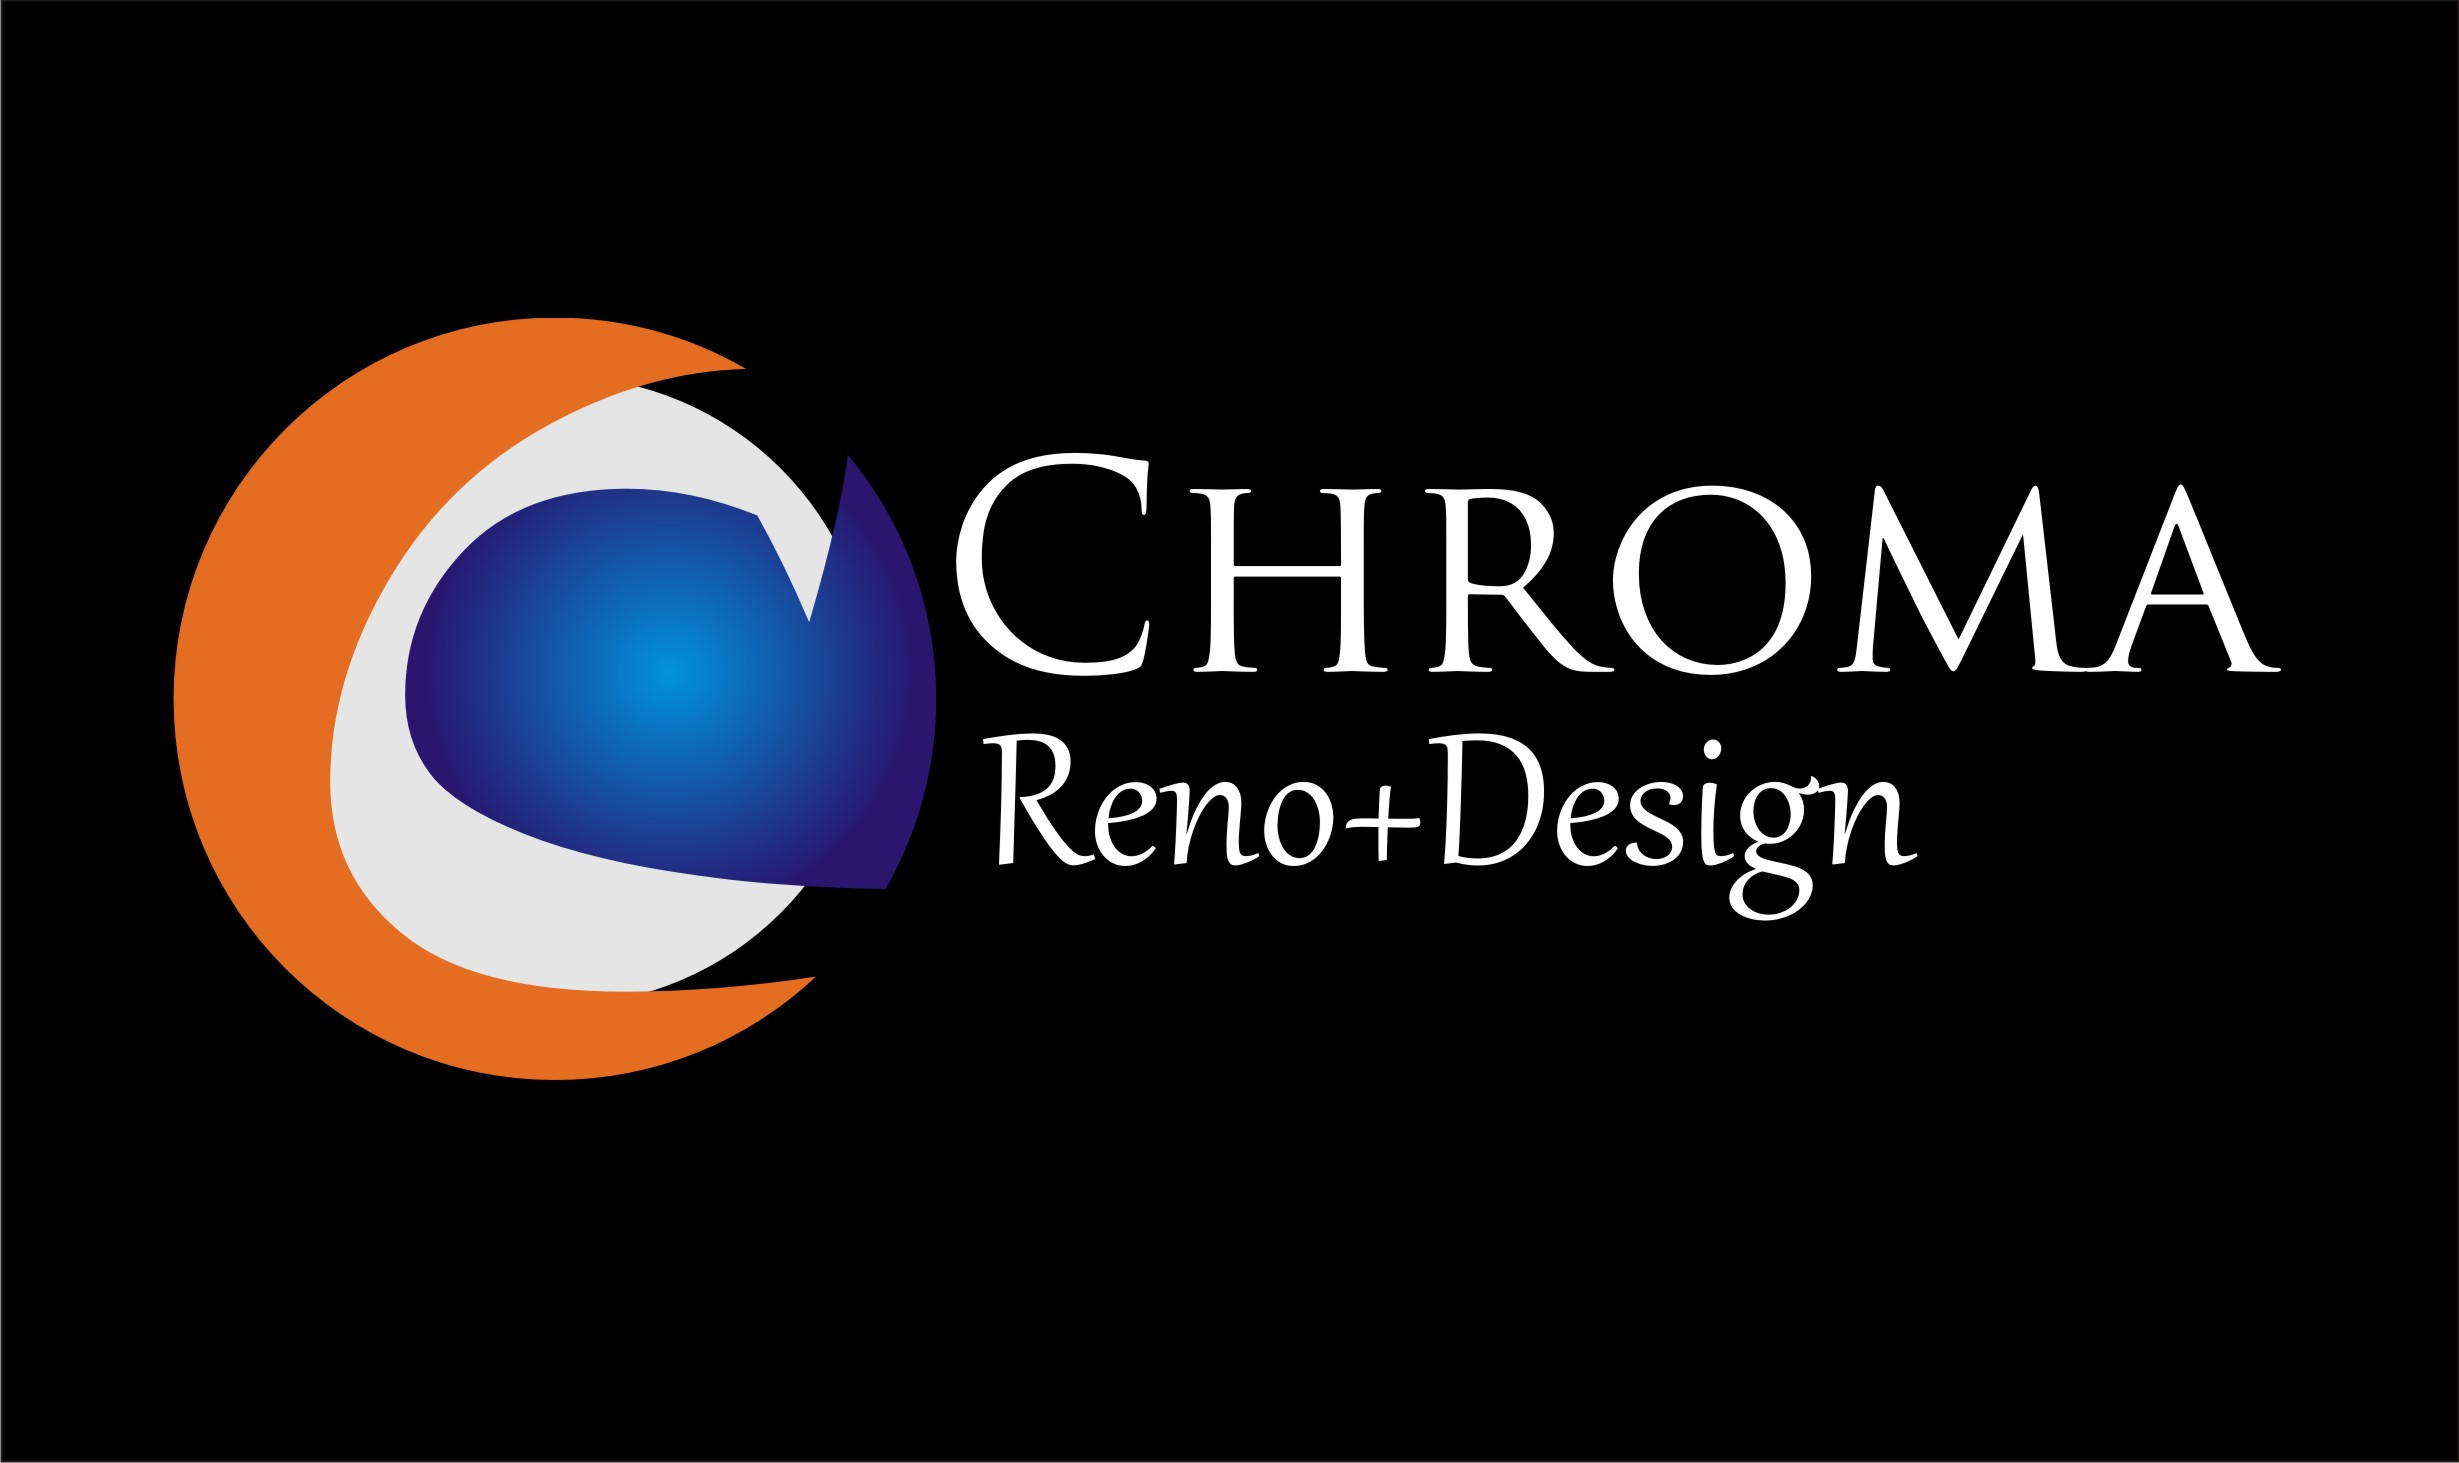 Logo Design by Josri Vengeance - Entry No. 231 in the Logo Design Contest Inspiring Logo Design for Chroma Reno+Design.